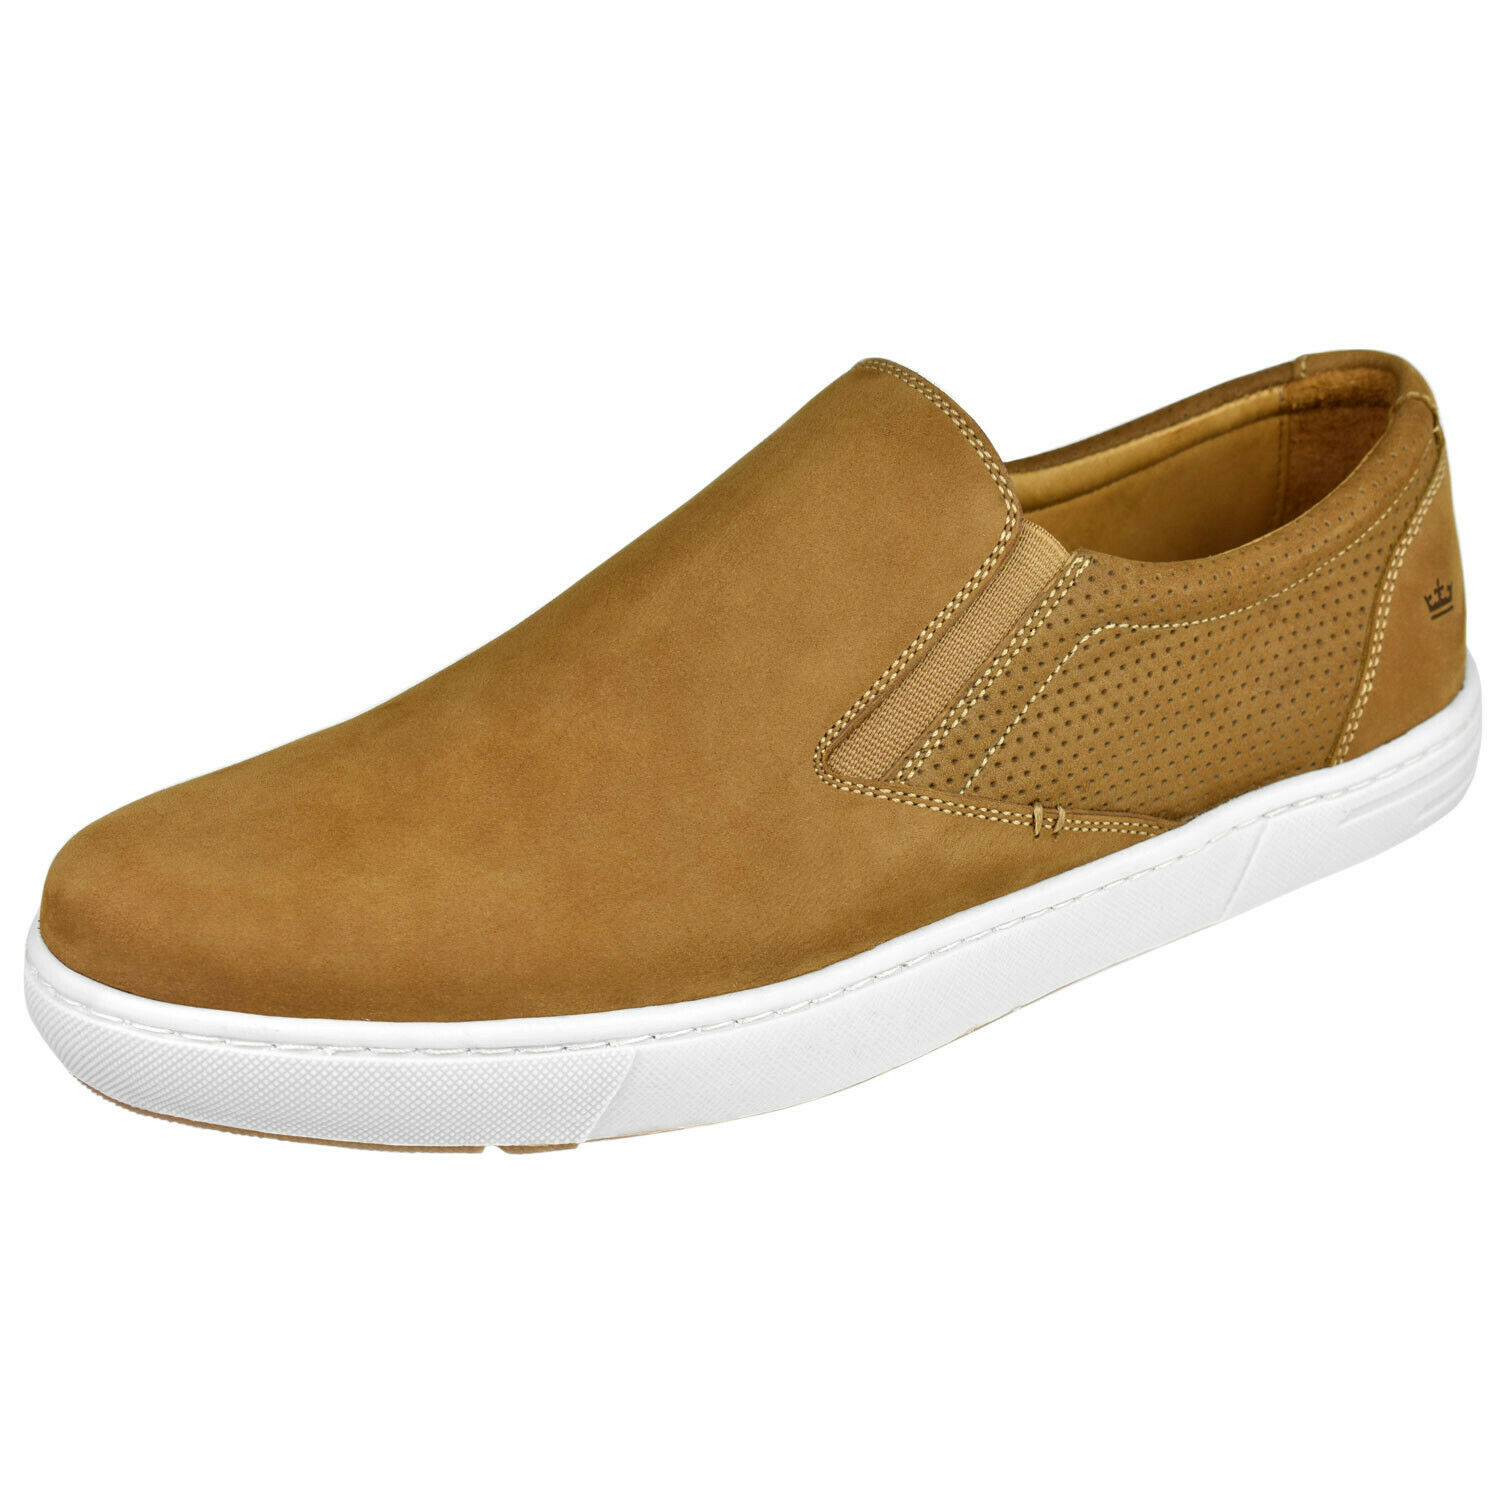 Peter millar para hombre Big Sur tan suede slip on zapatillas Talla 11